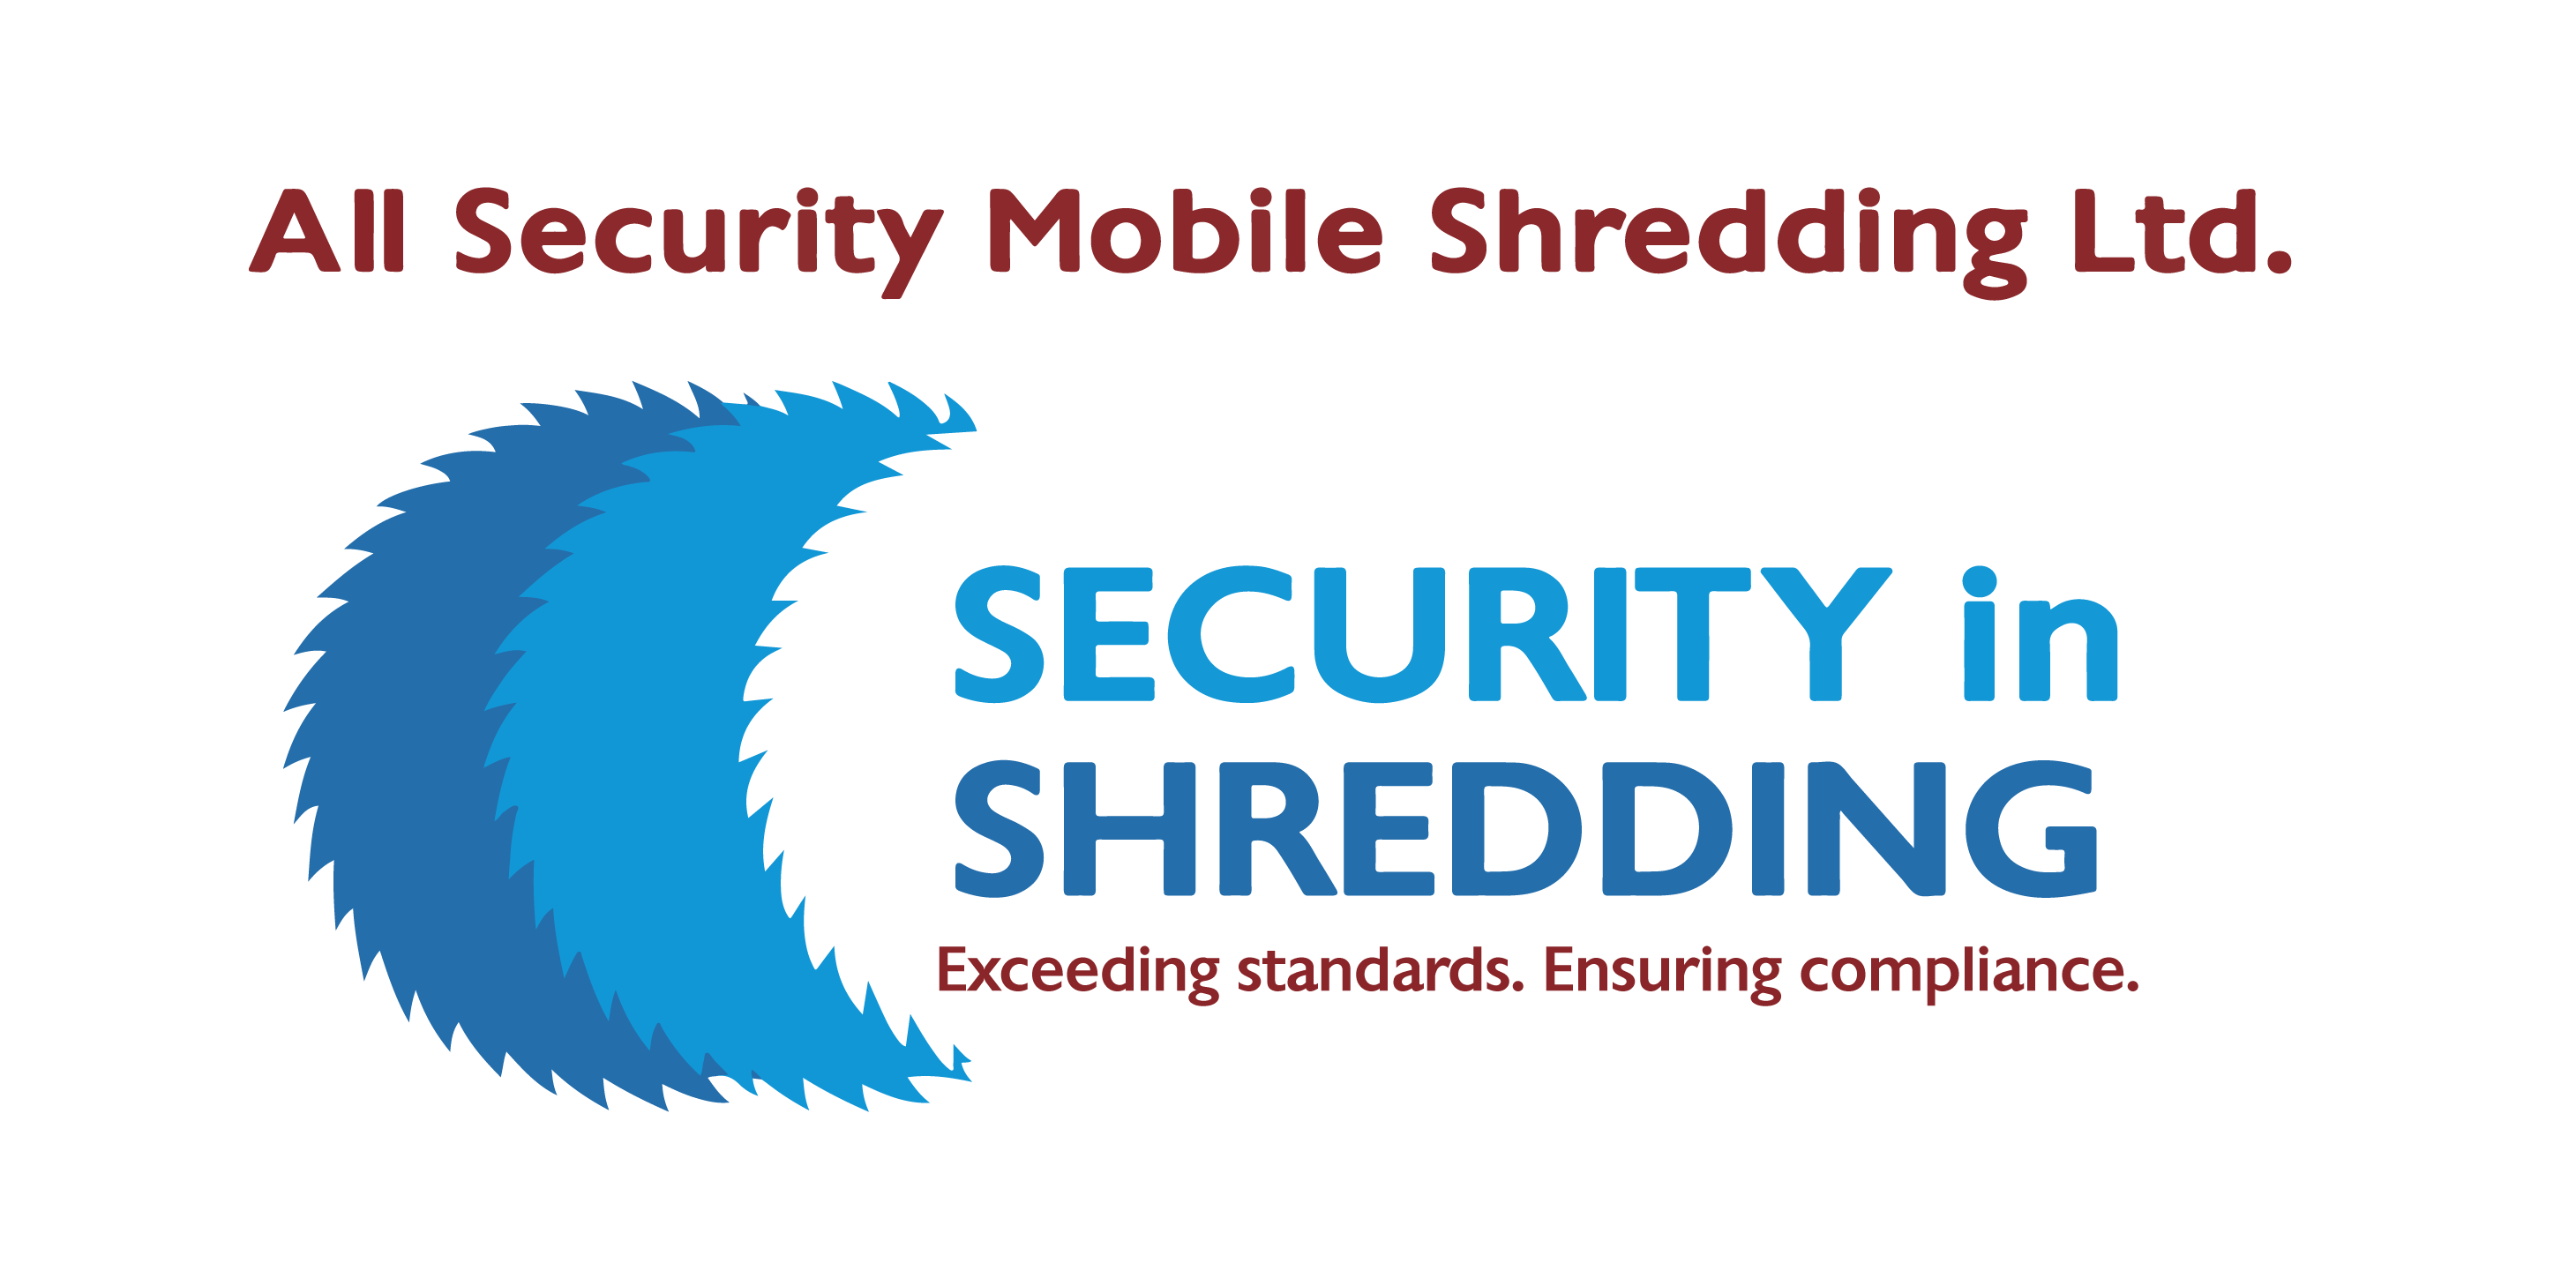 Security in Shredding Data Protection Law